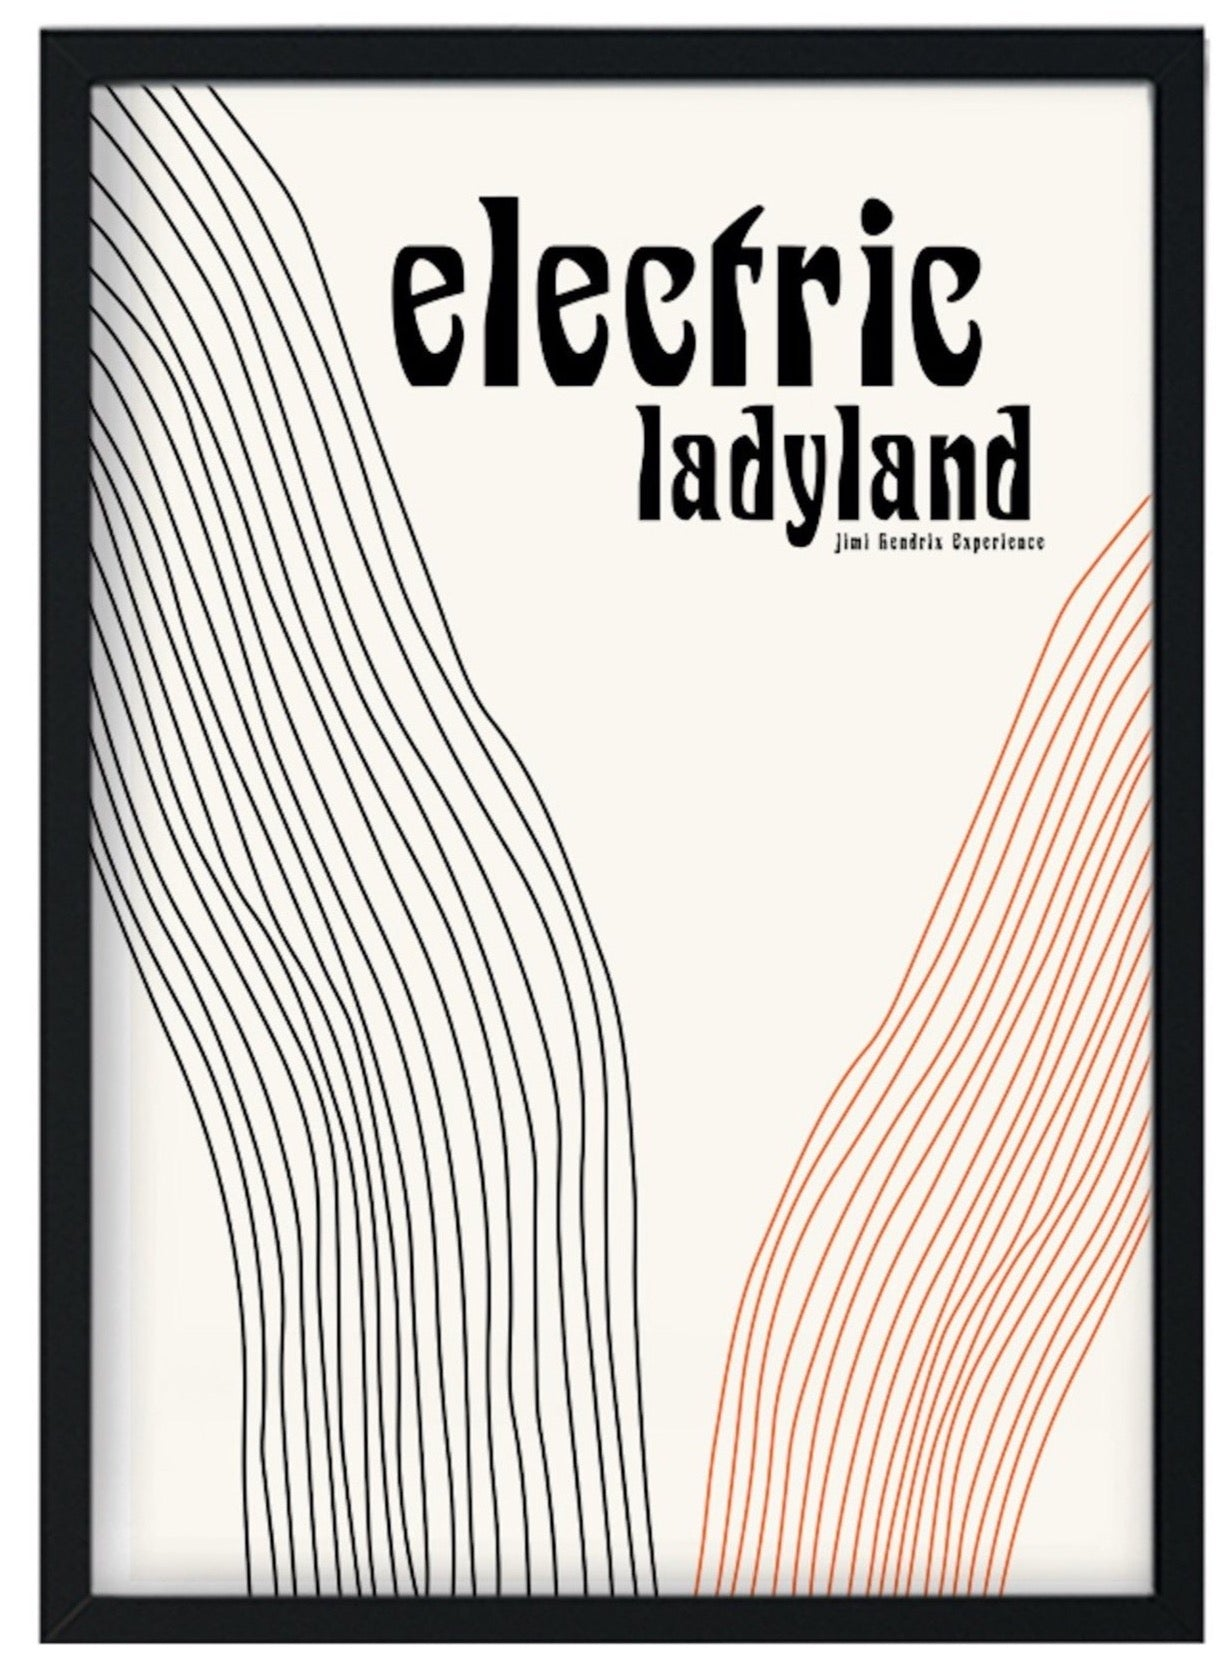 Electric ladyland  retro A3 Art Print